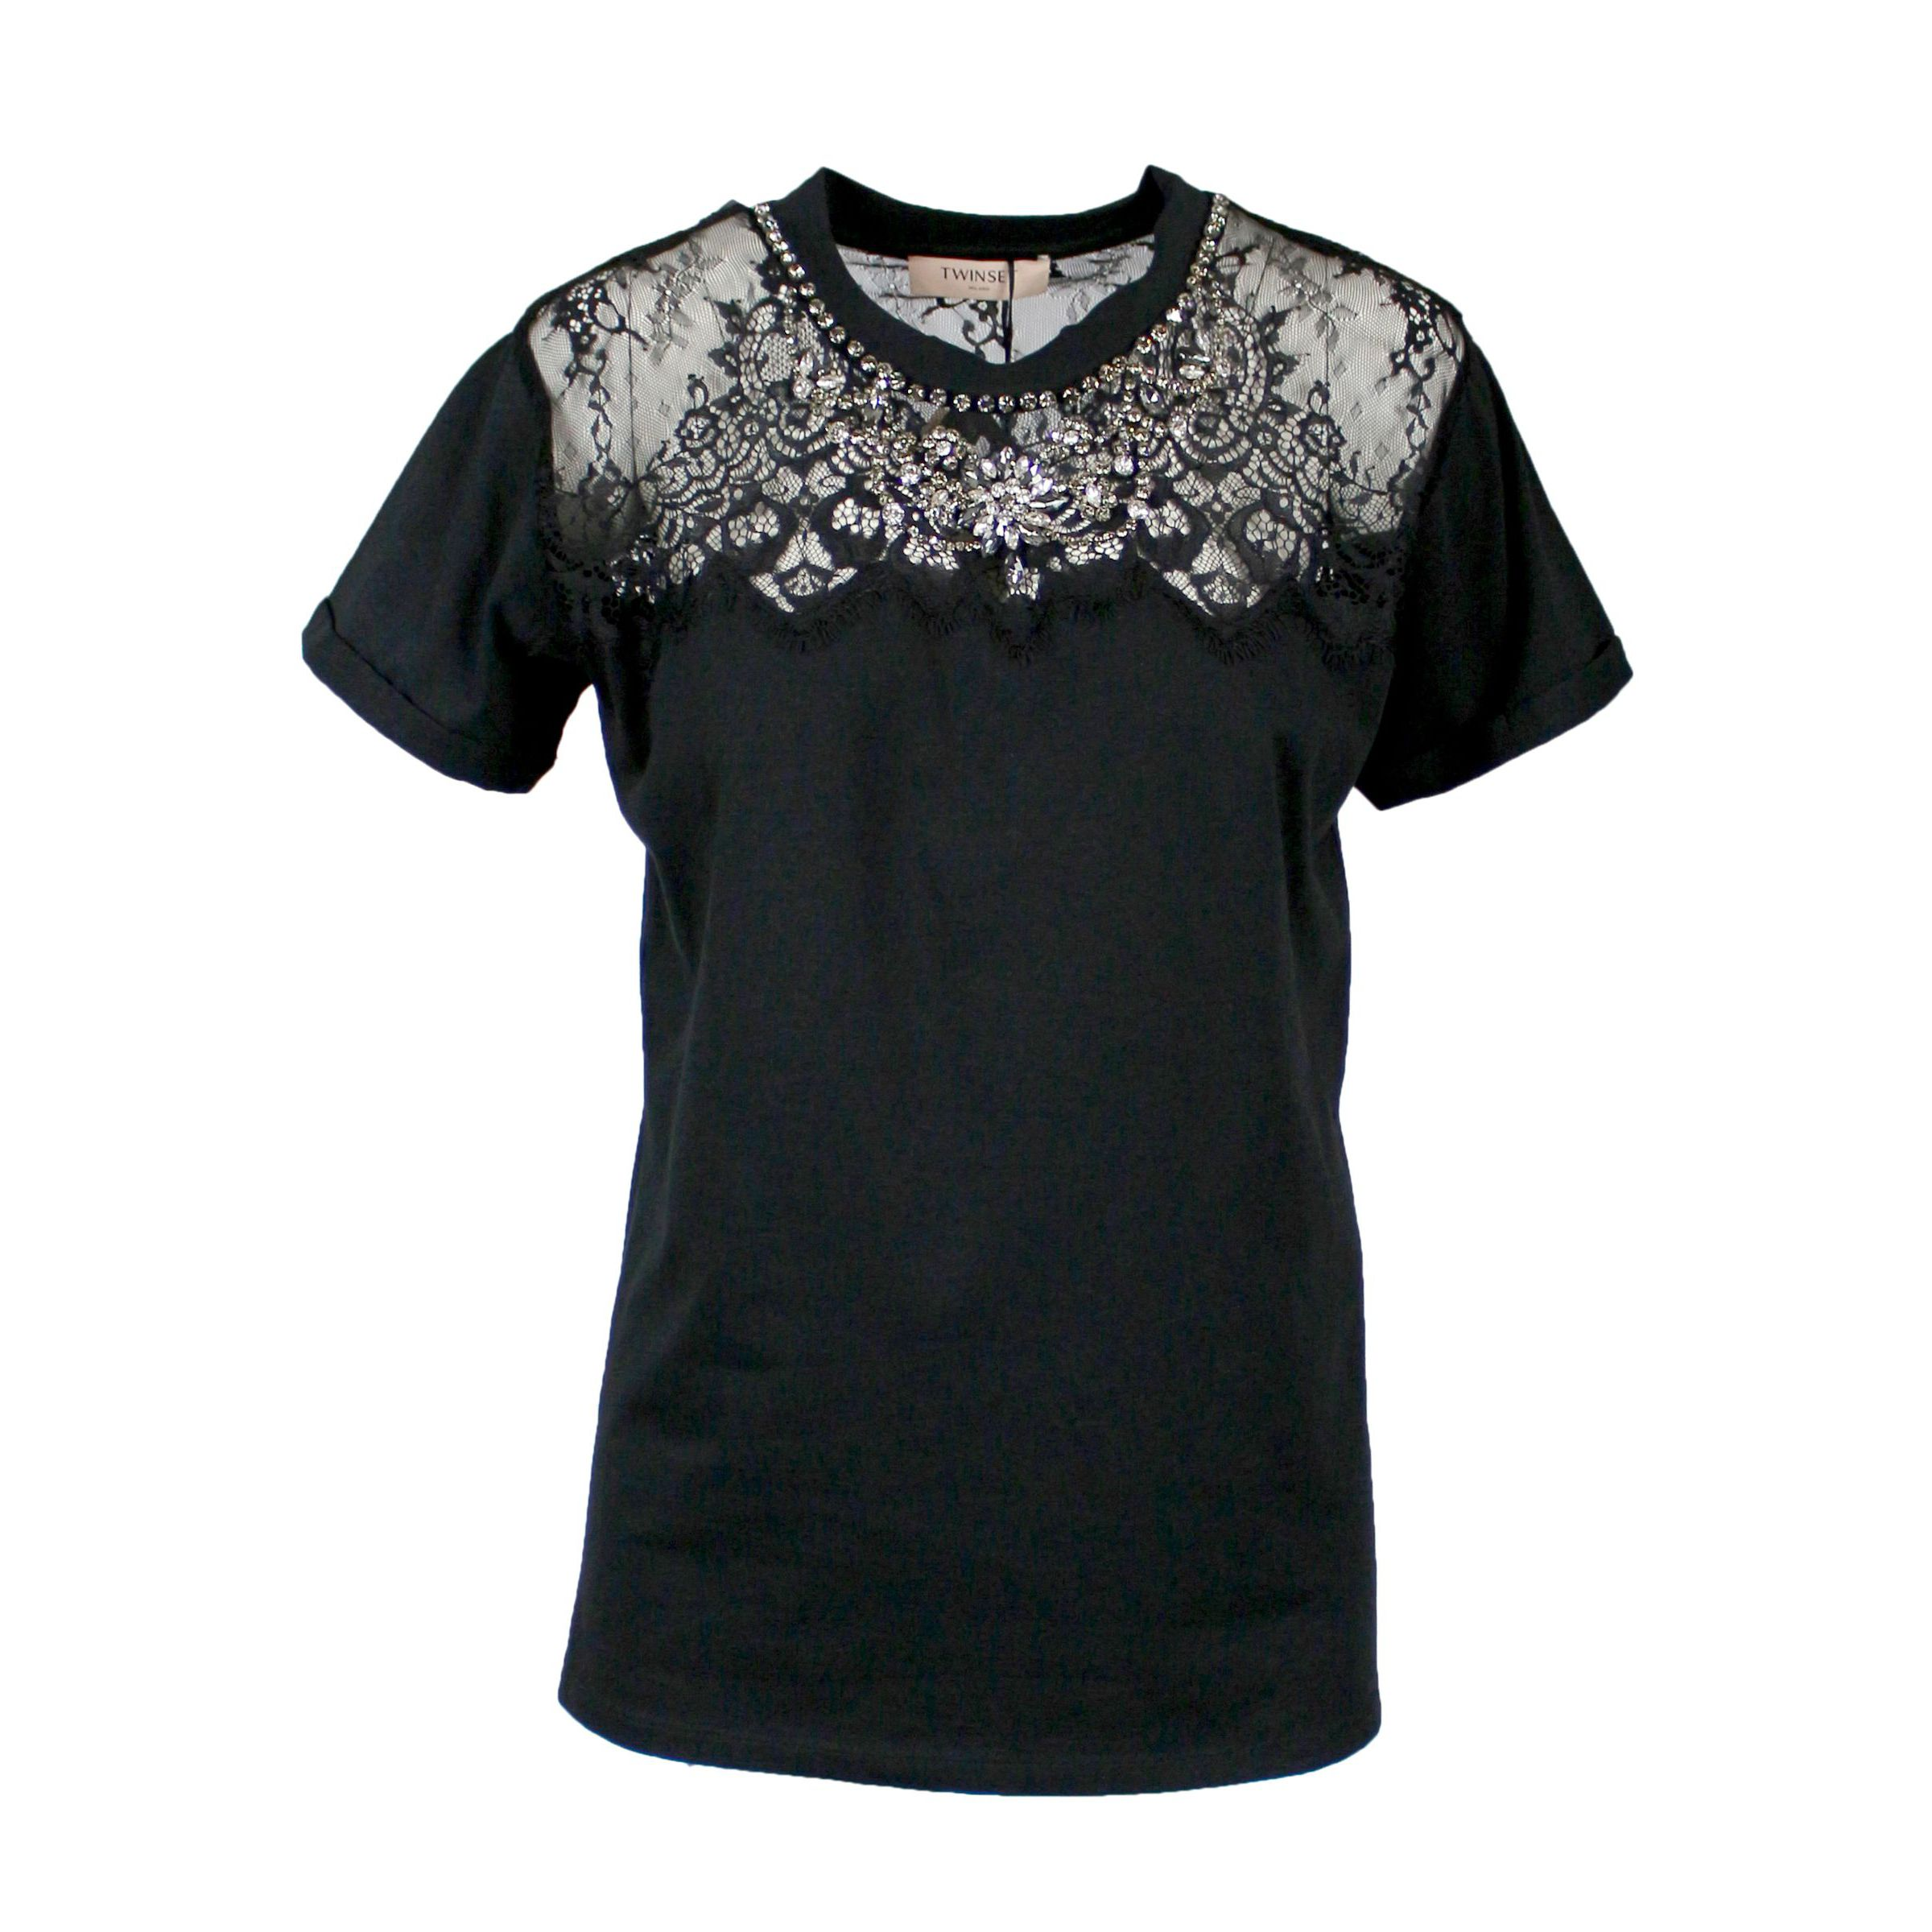 T And With Lace Cotton Inserts Shirt Rhinestone EH92DIYW